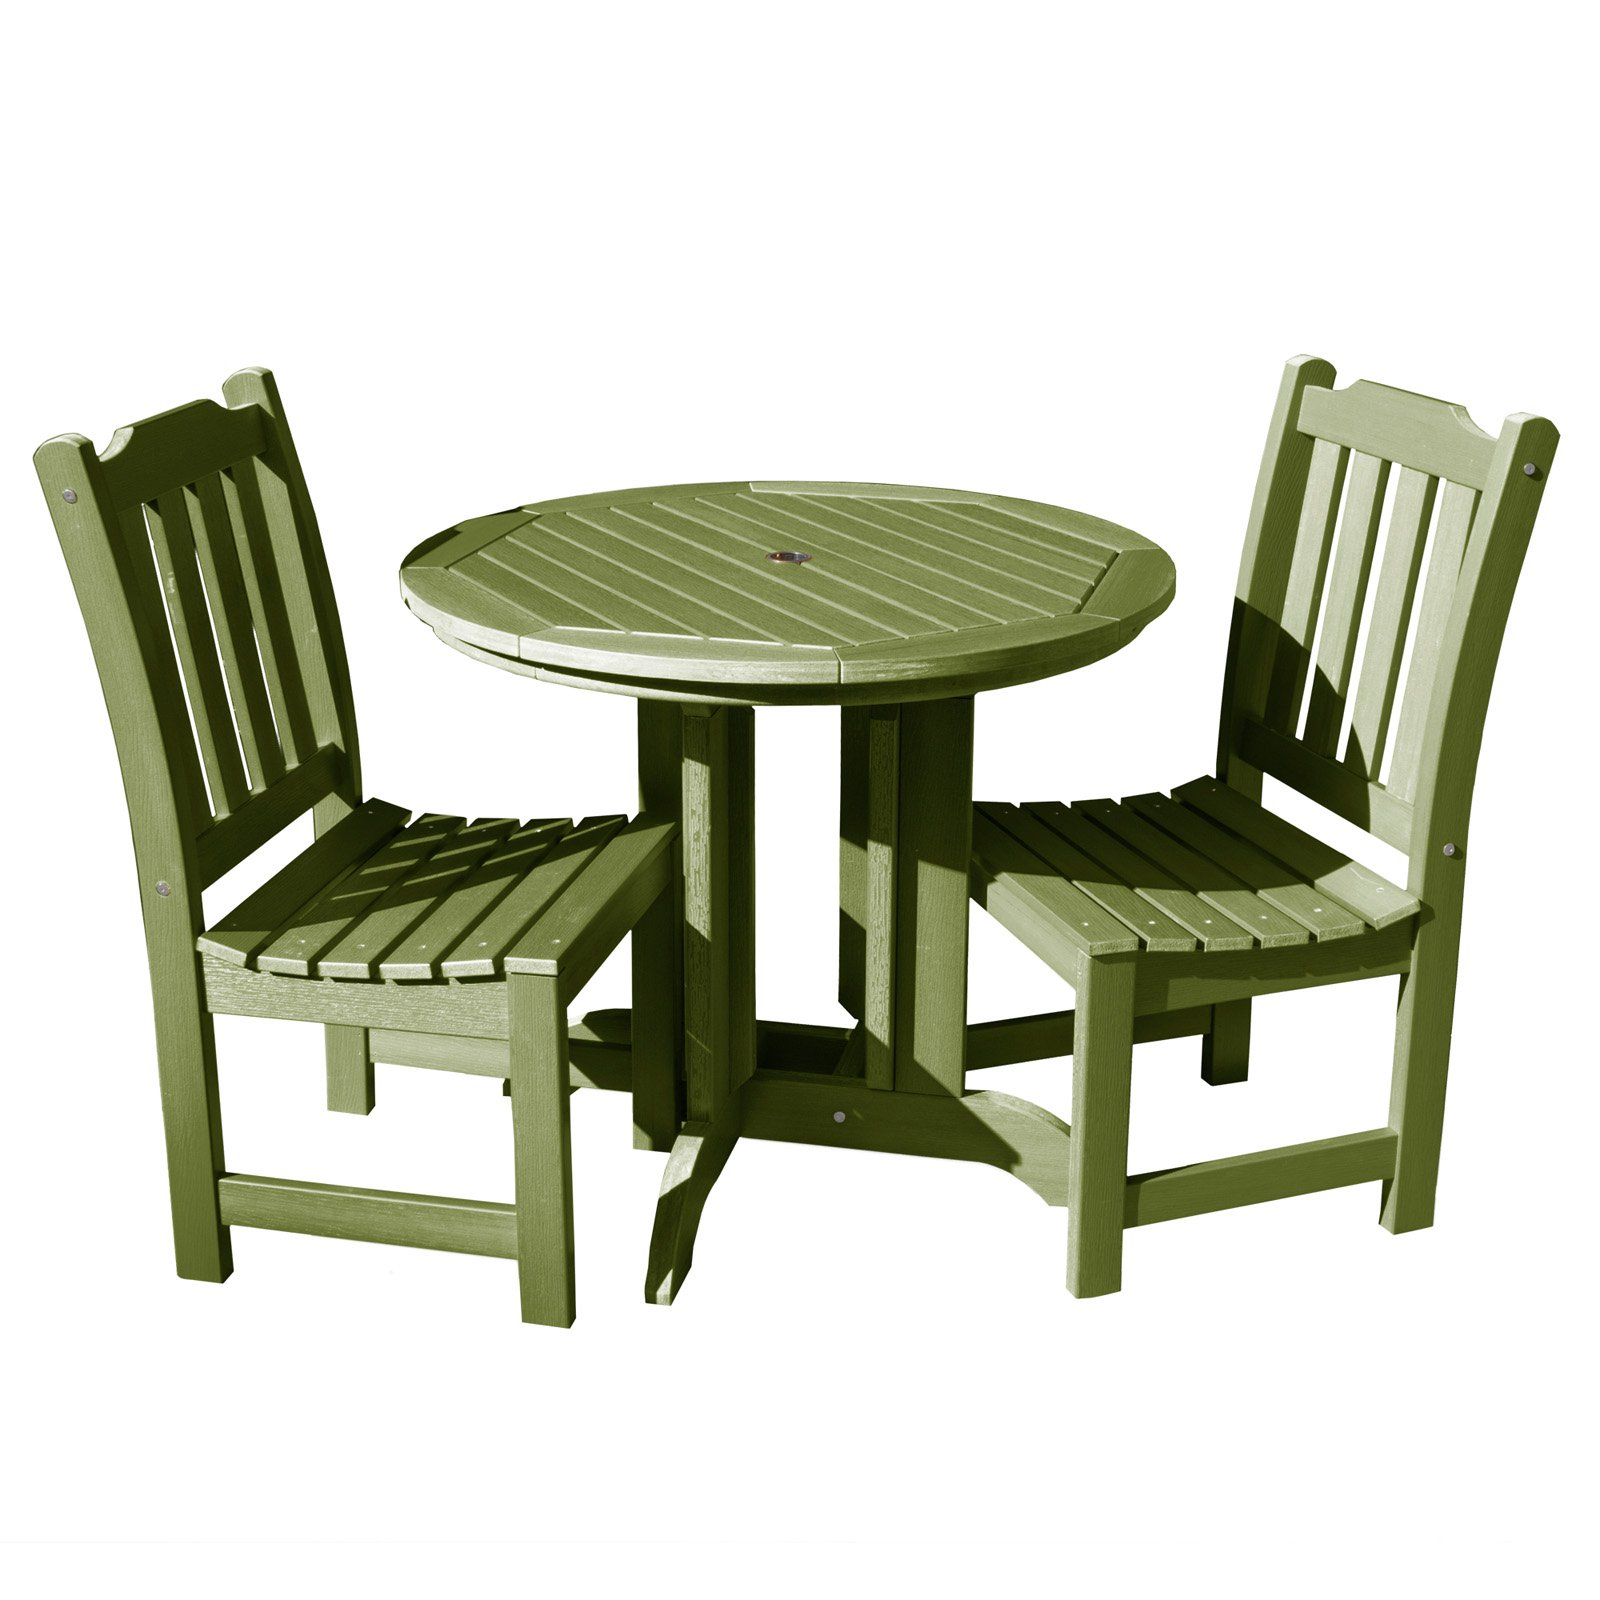 Well Known Saintcroix 3 Piece Dining Sets Regarding Outdoor Highwood Lehigh Recycled Plastic 3 Piece Round Patio Bistro (View 24 of 25)